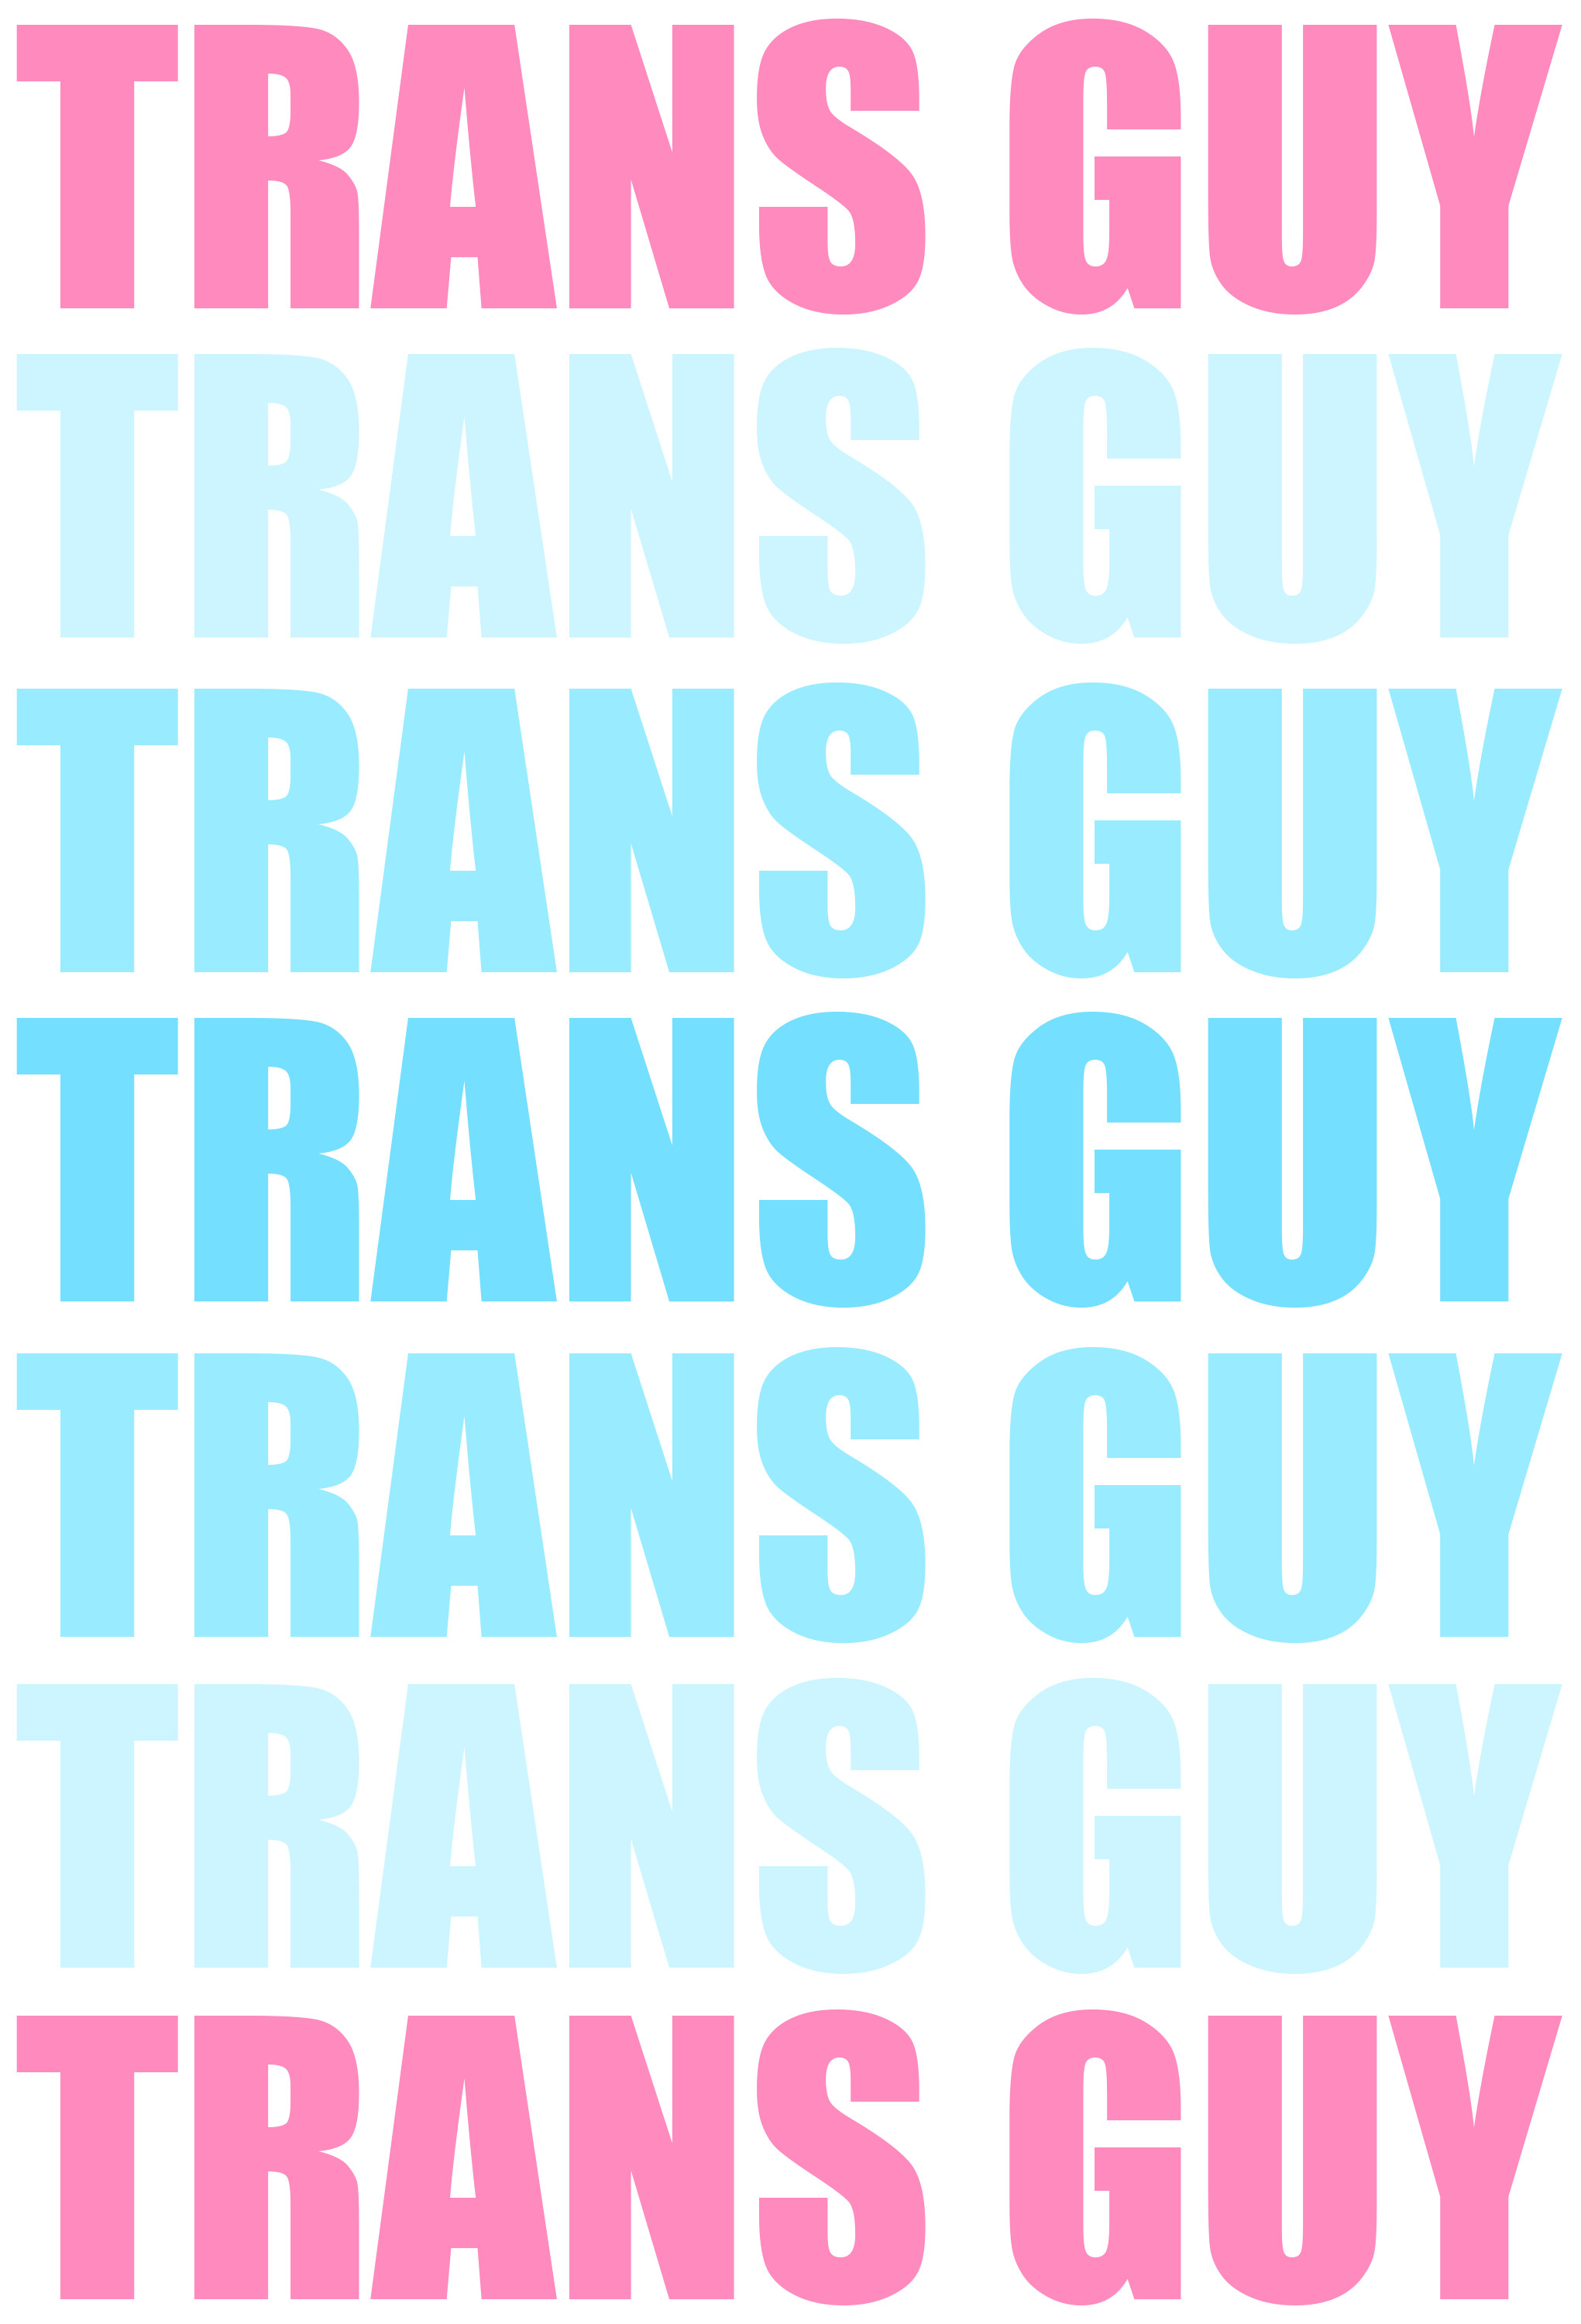 … Trans Guy Typography by Pride-Flags